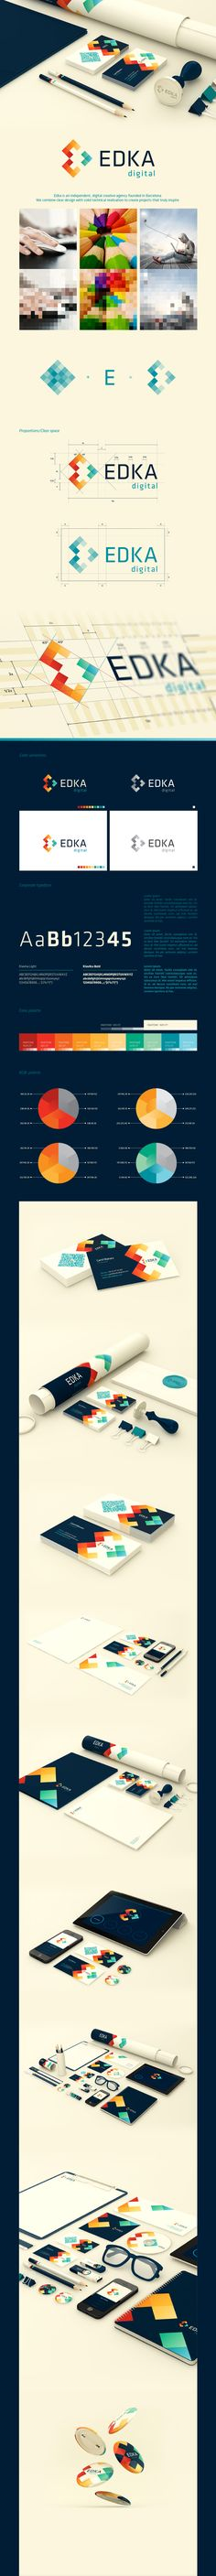 Edka Visual Identity by Vio Pintilie